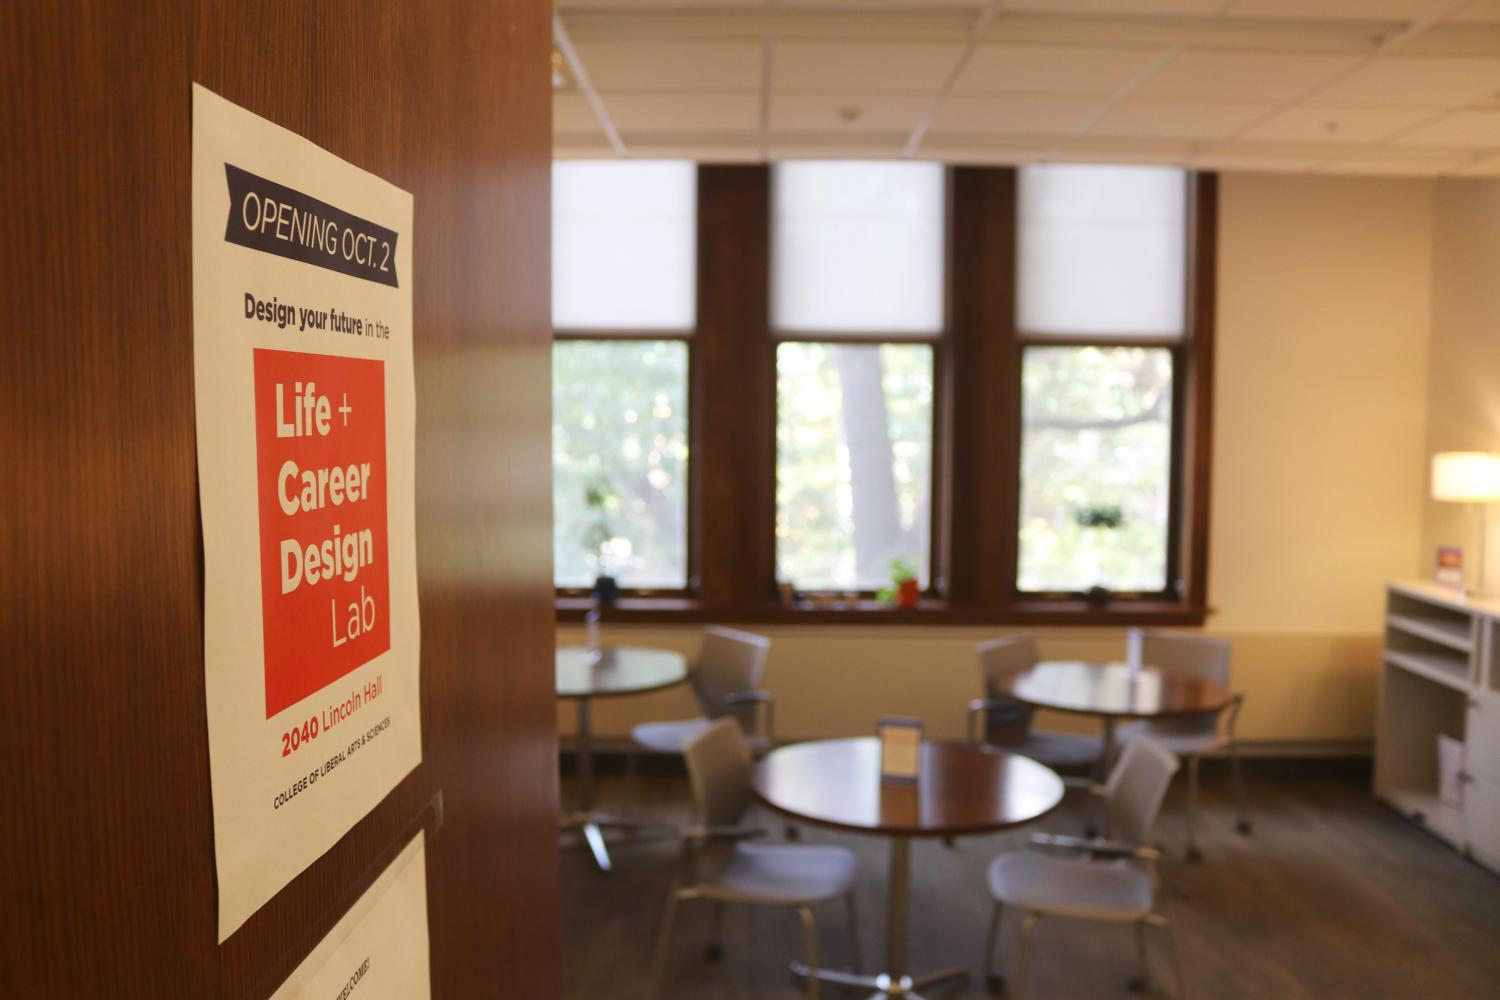 College of LAS sets to open a new career lab to help undergraduates with internships, peer advising, computer and printer access, and more. The Life + Career Design Lab is set to open Oct. 2 in room 2040 in Lincoln Hall.